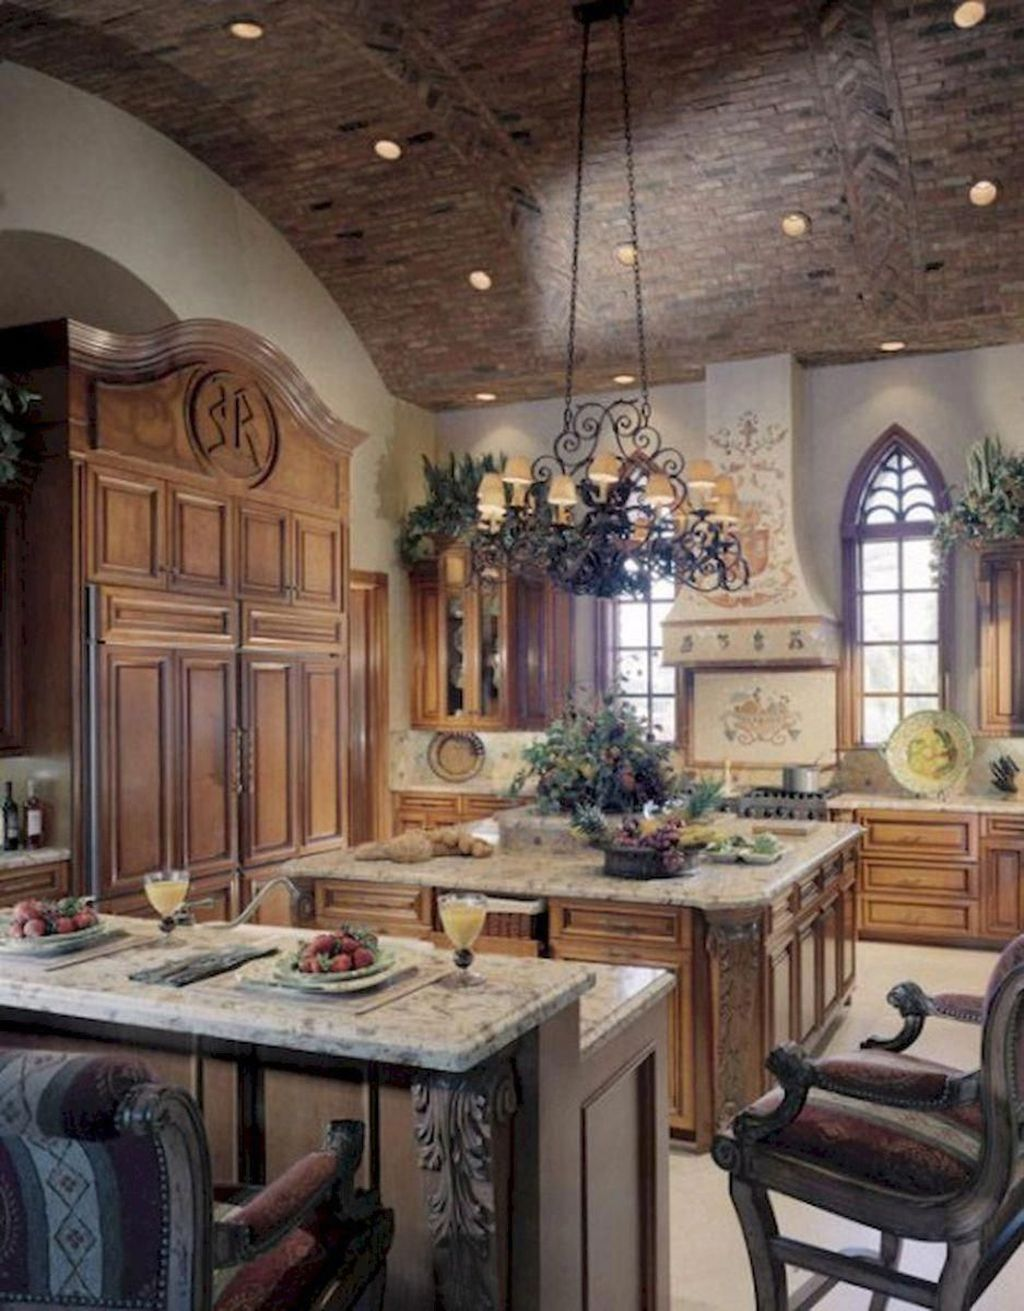 20 Luxurious Tuscan Kitchen Design For Inspiration Trenduhome In 2020 French Country Decorating Kitchen Tuscan Kitchen Design Country Kitchen Designs